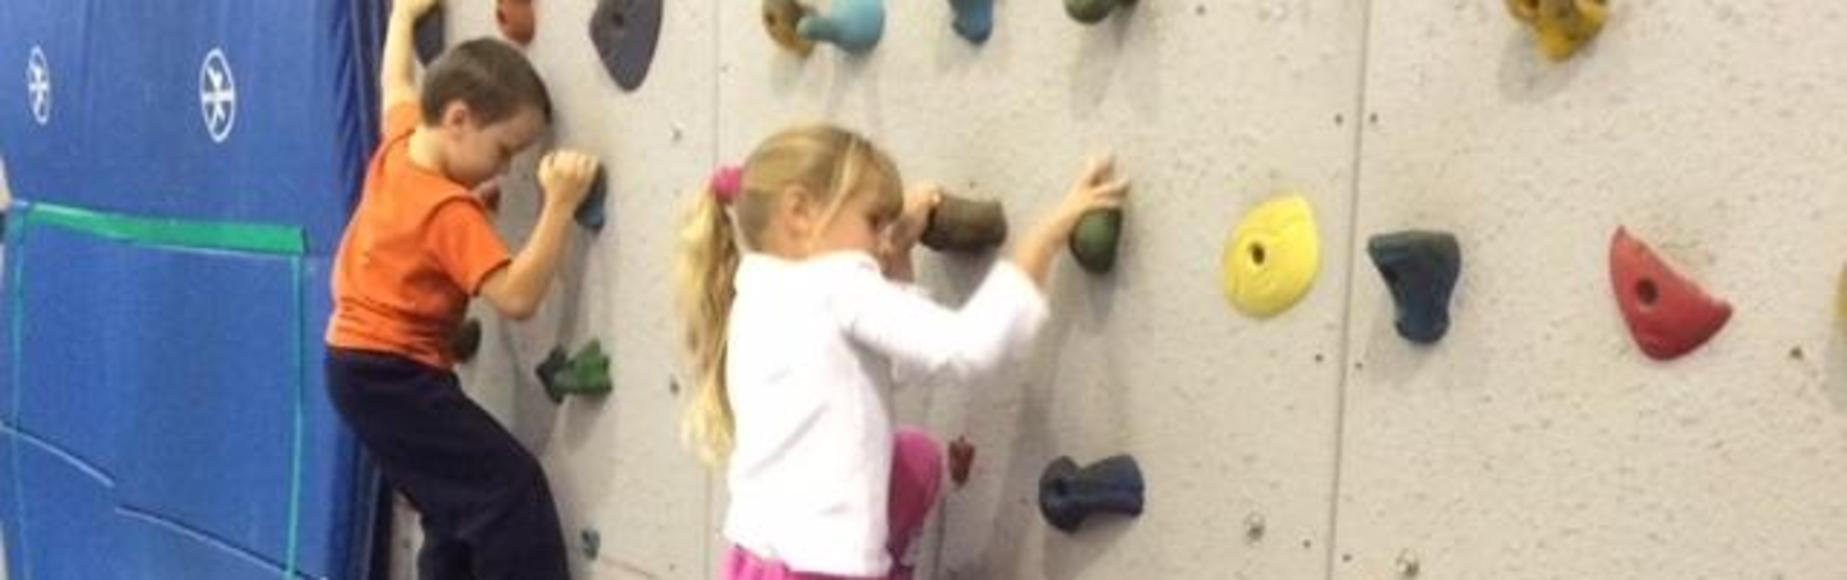 Climbing Wall Picture